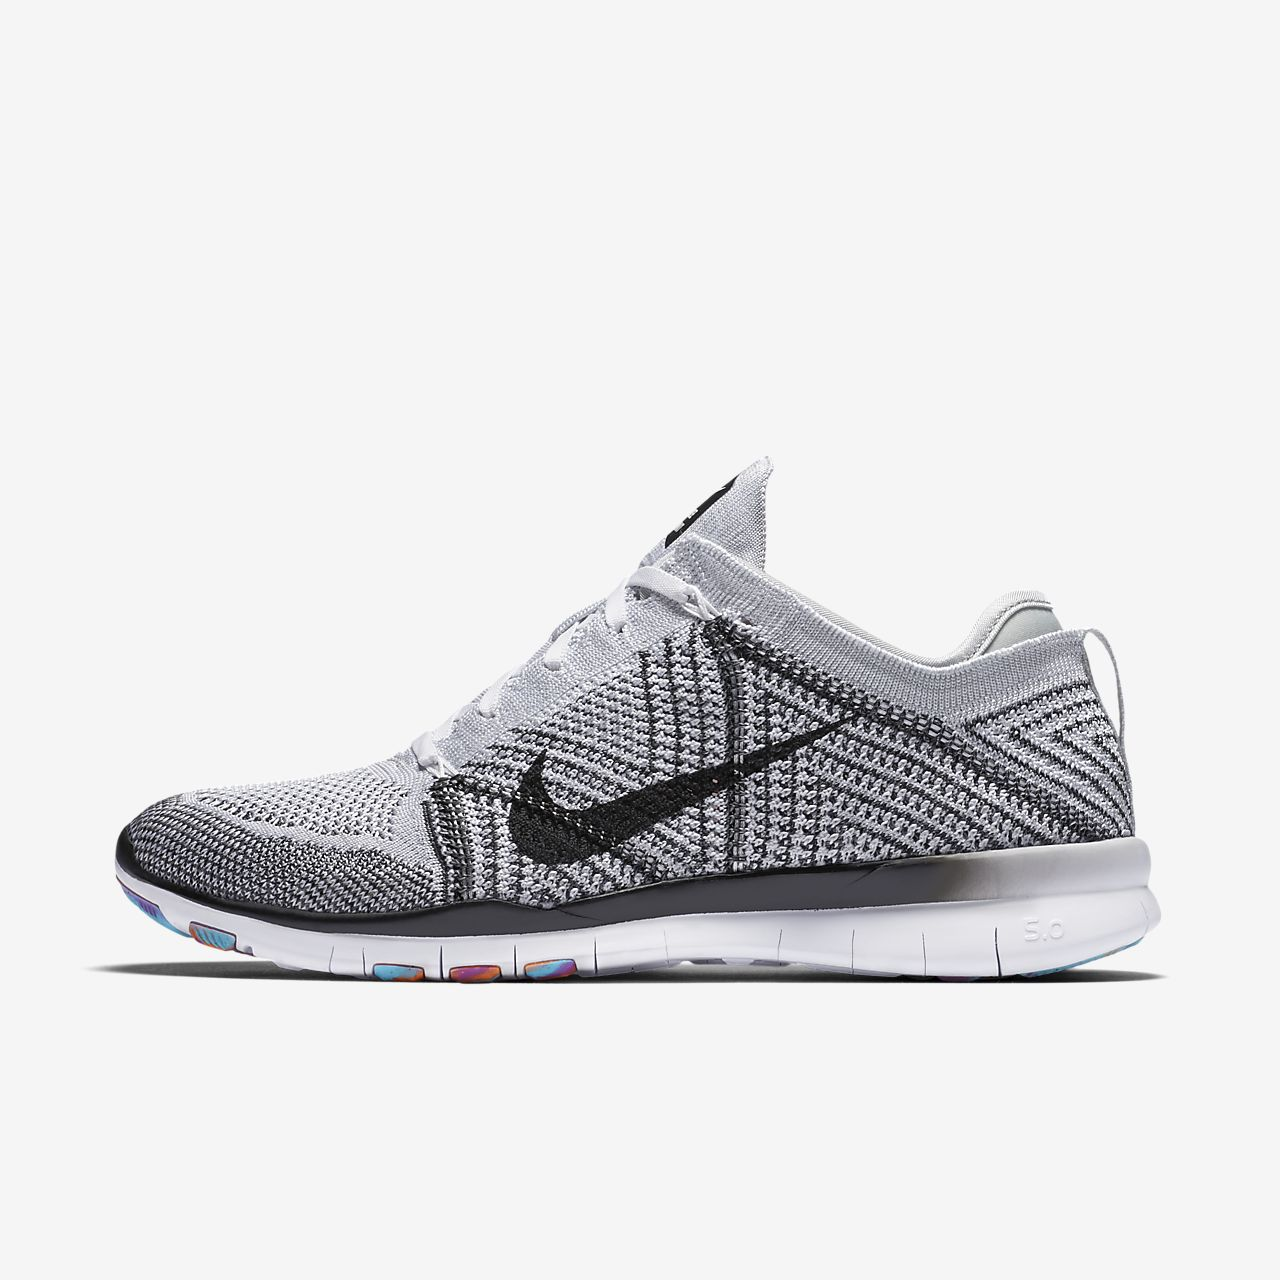 ... Nike Free TR 5 Flyknit Women's Training Shoe